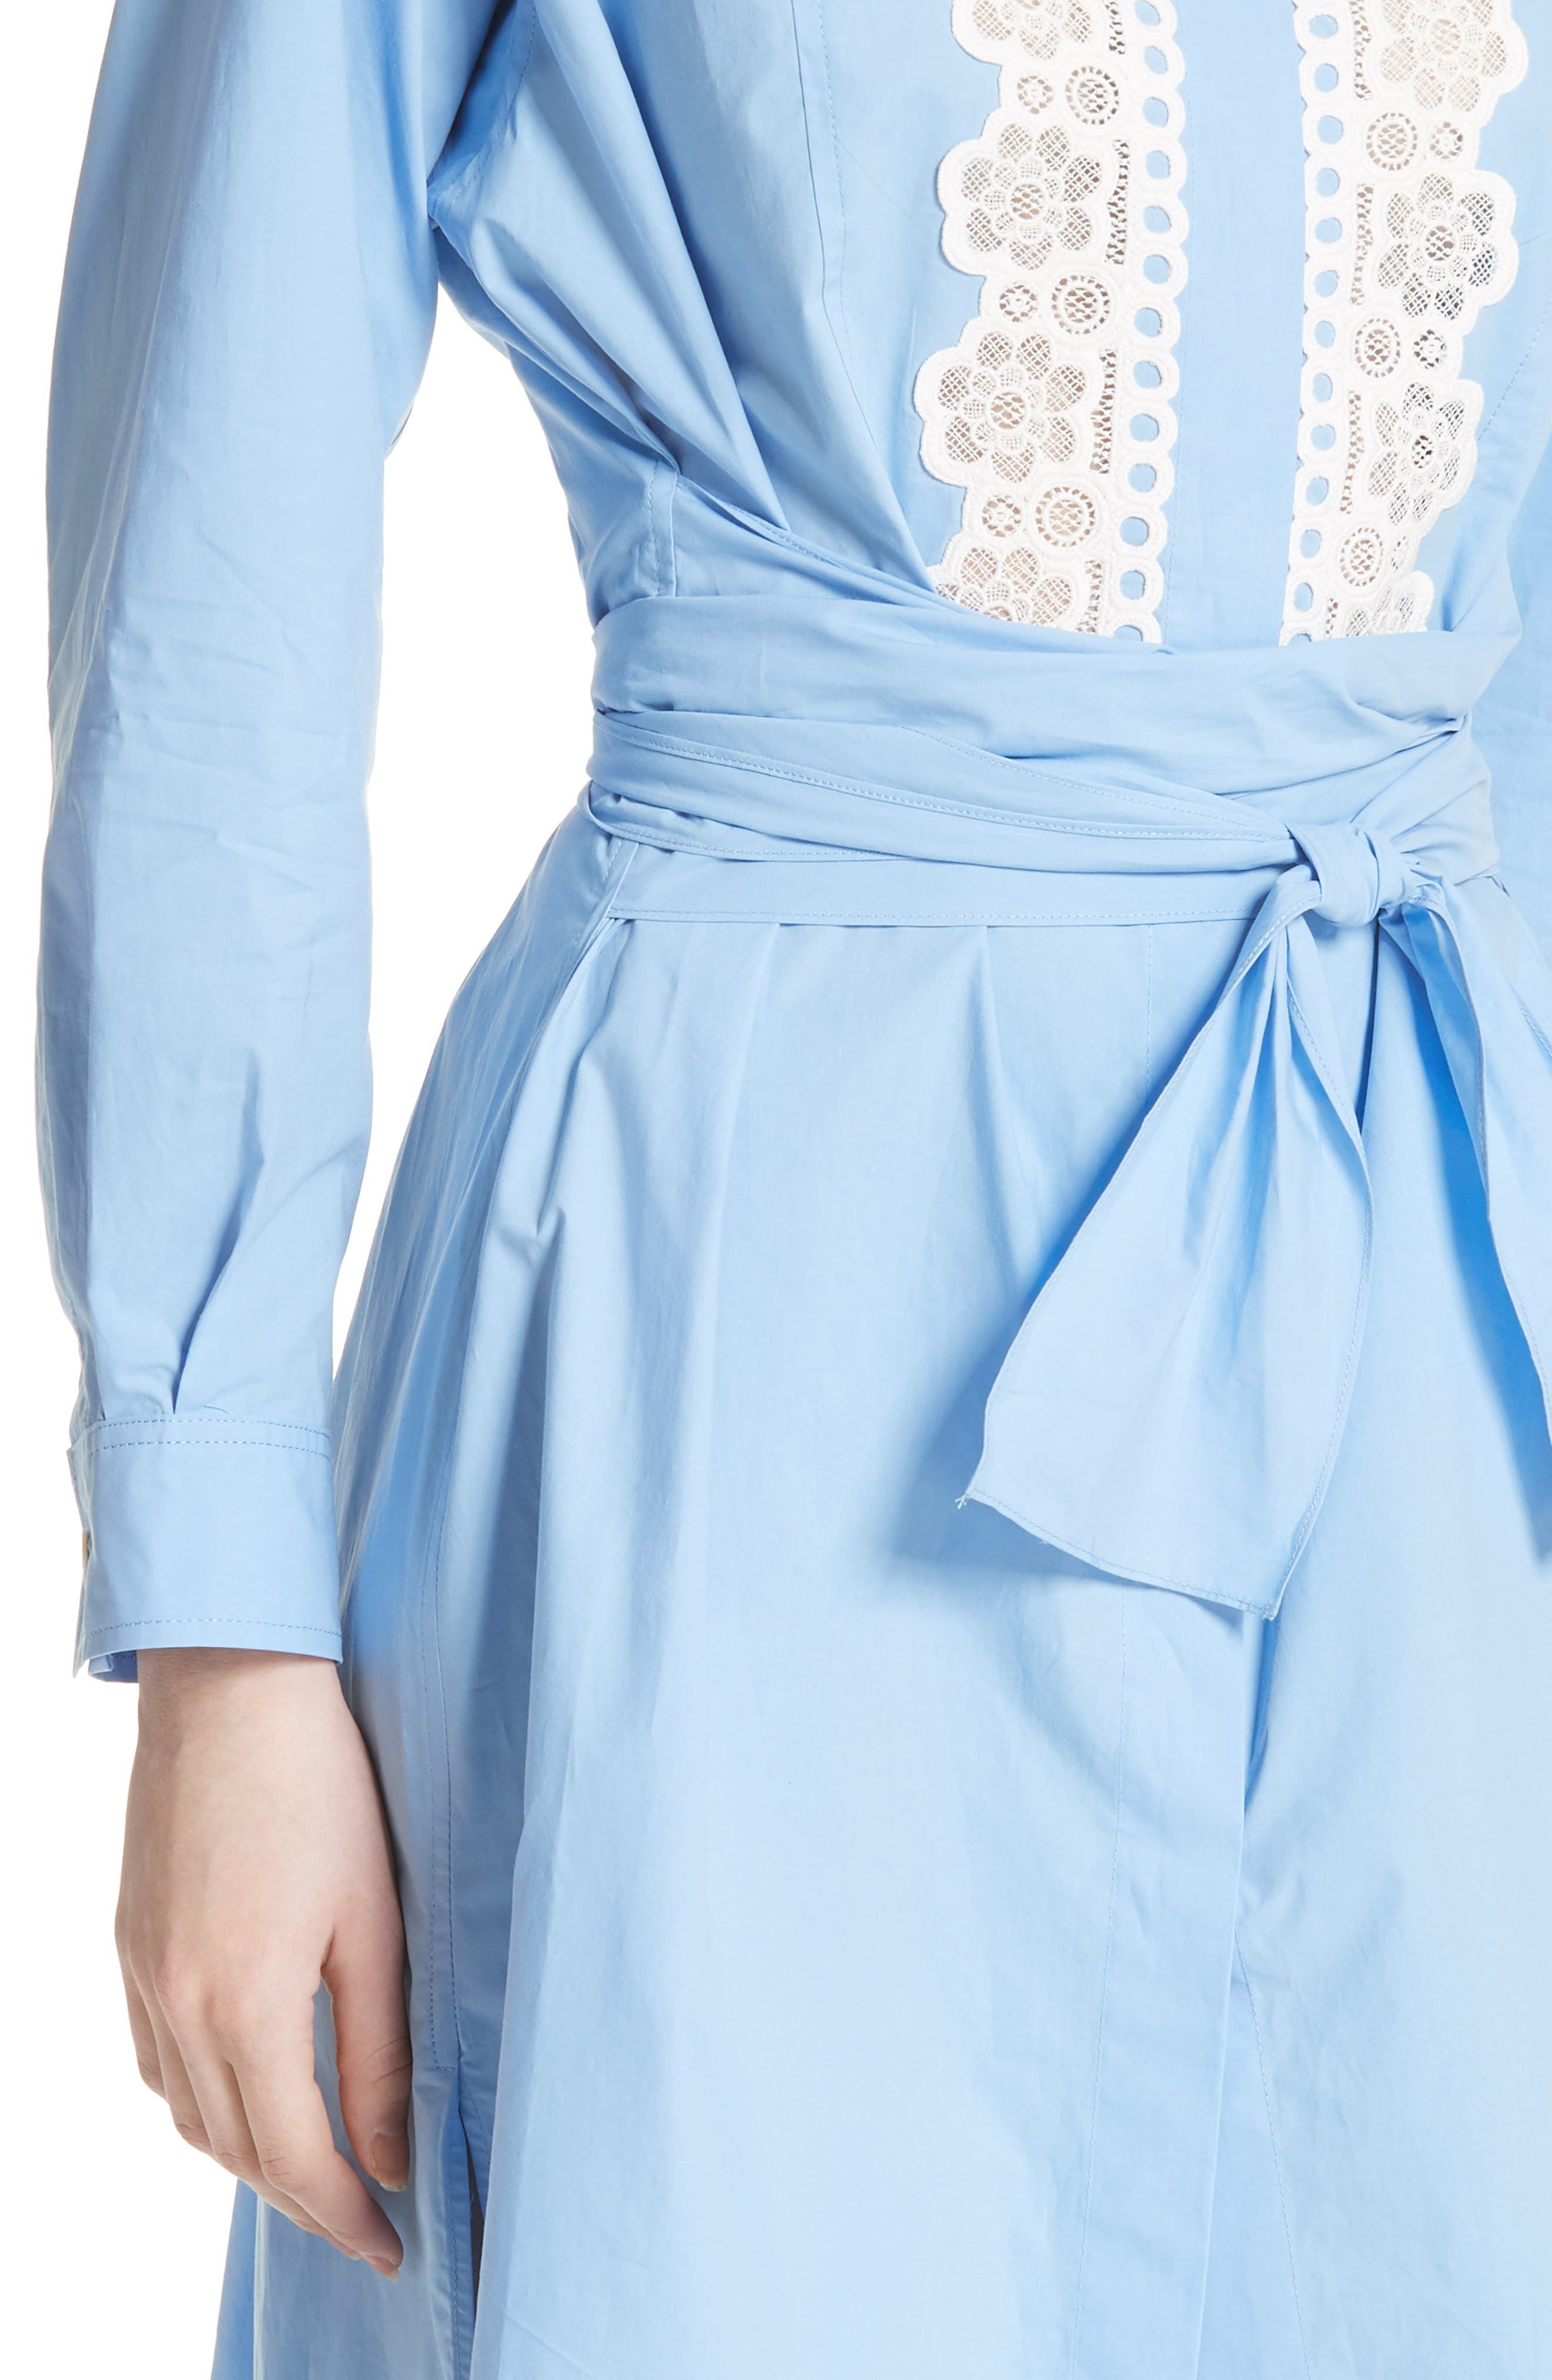 Bleu Ciel Cotton Shirtdress,                             Alternate thumbnail 4, color,